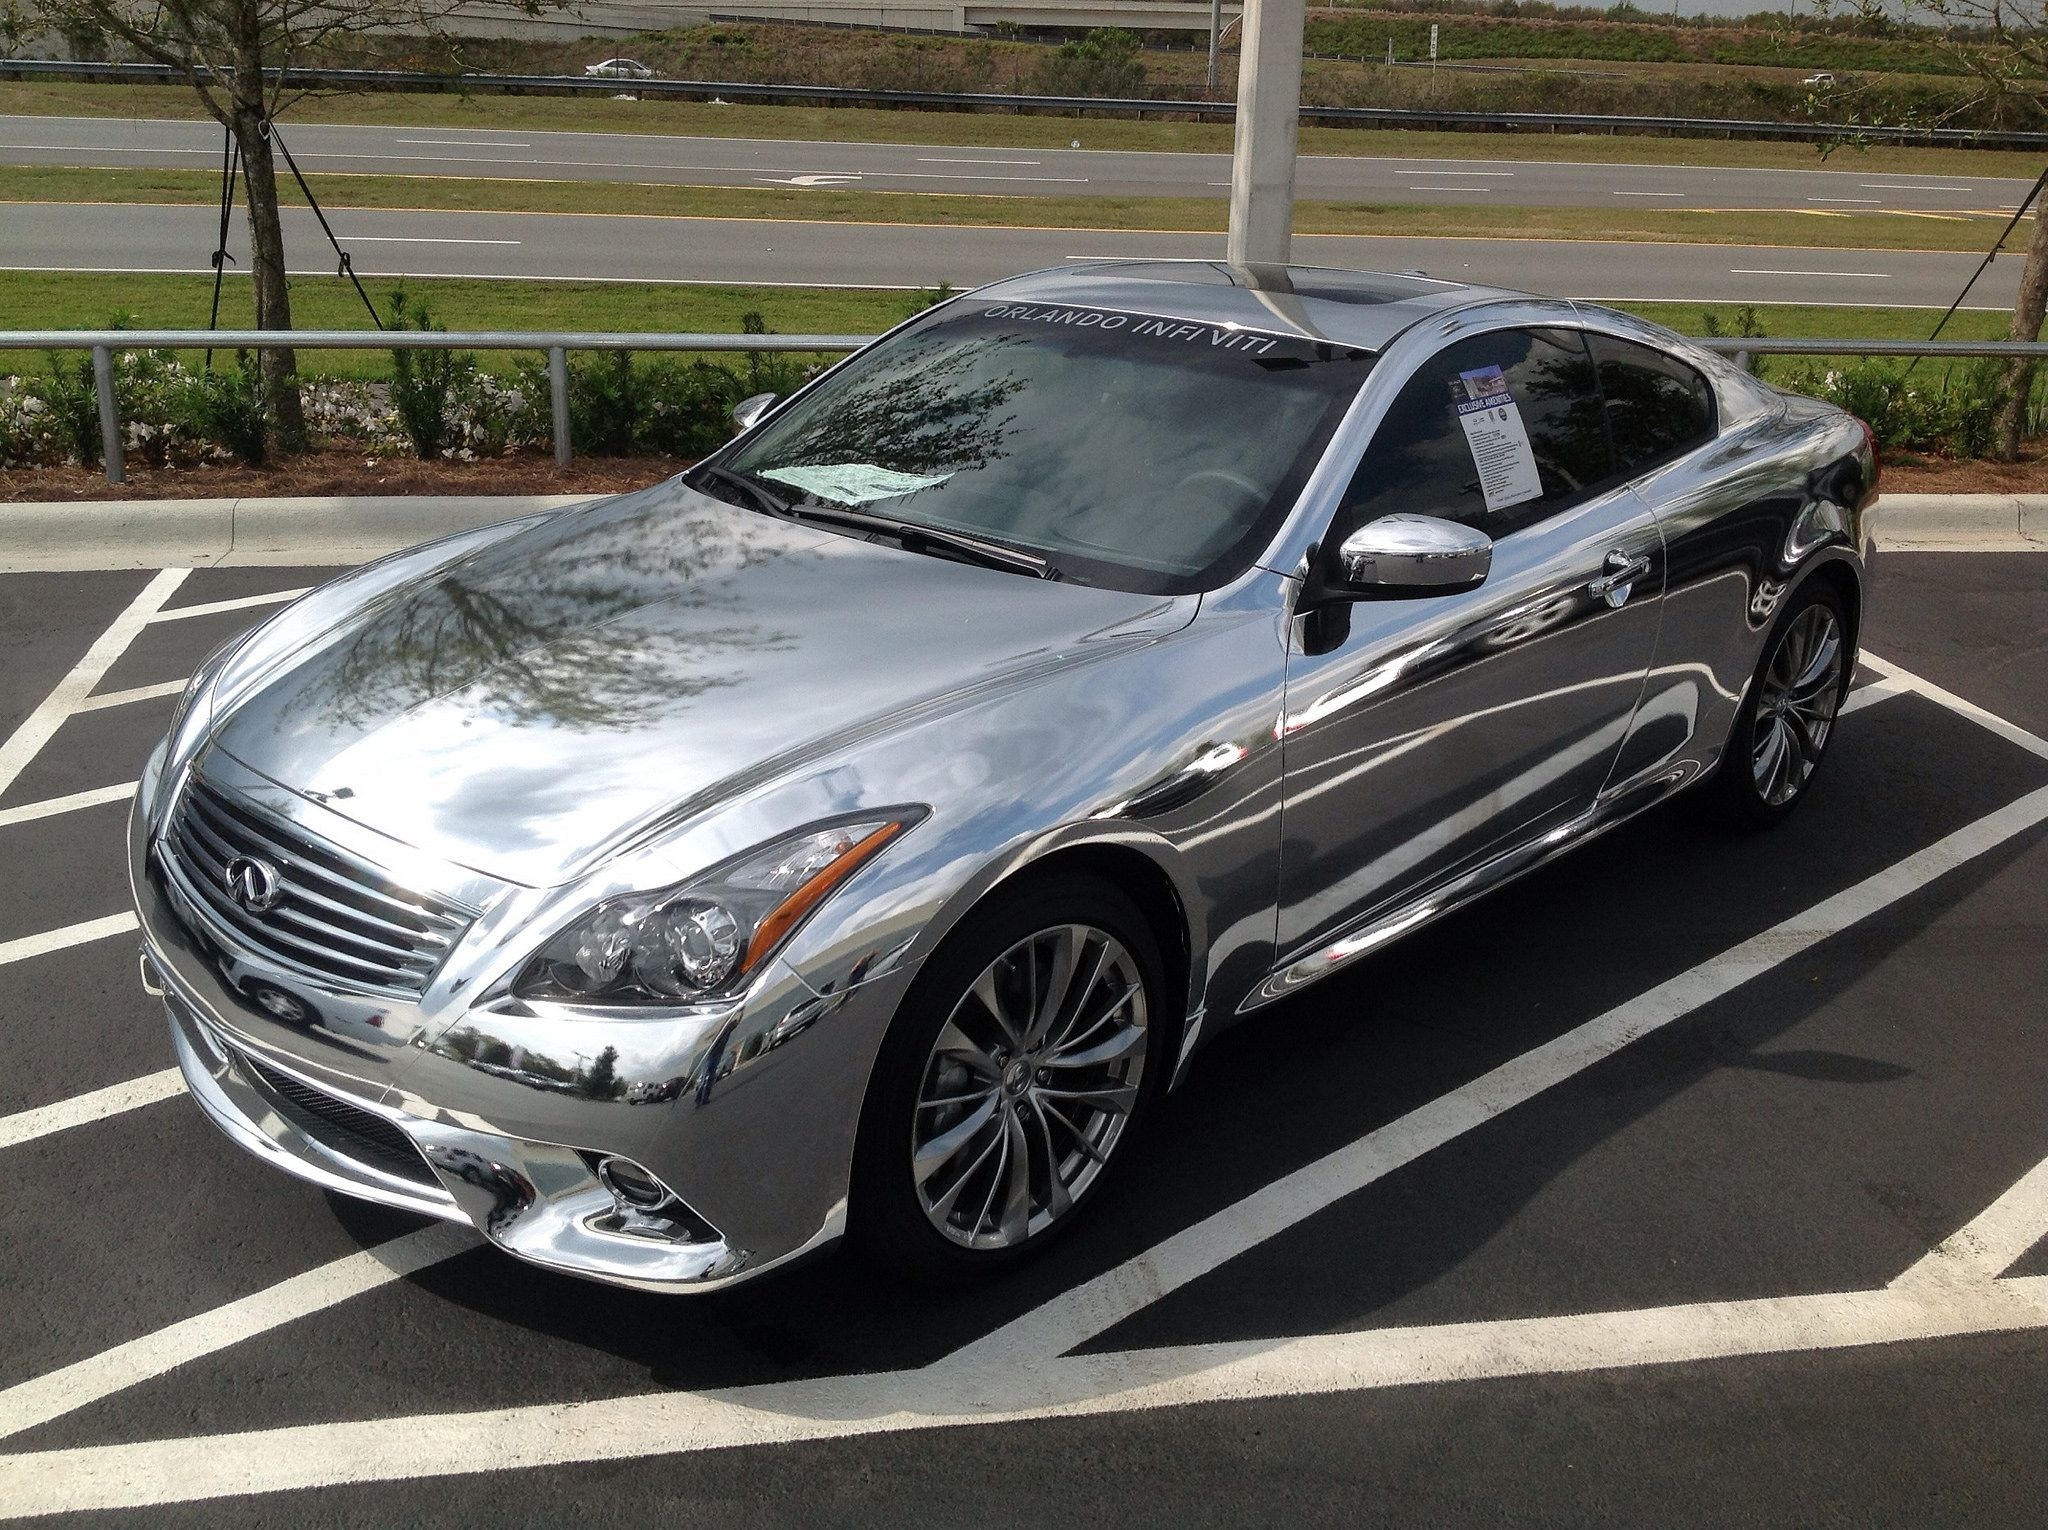 Chrome Color Change Car Wrap By Technosigns In Orlando Florida